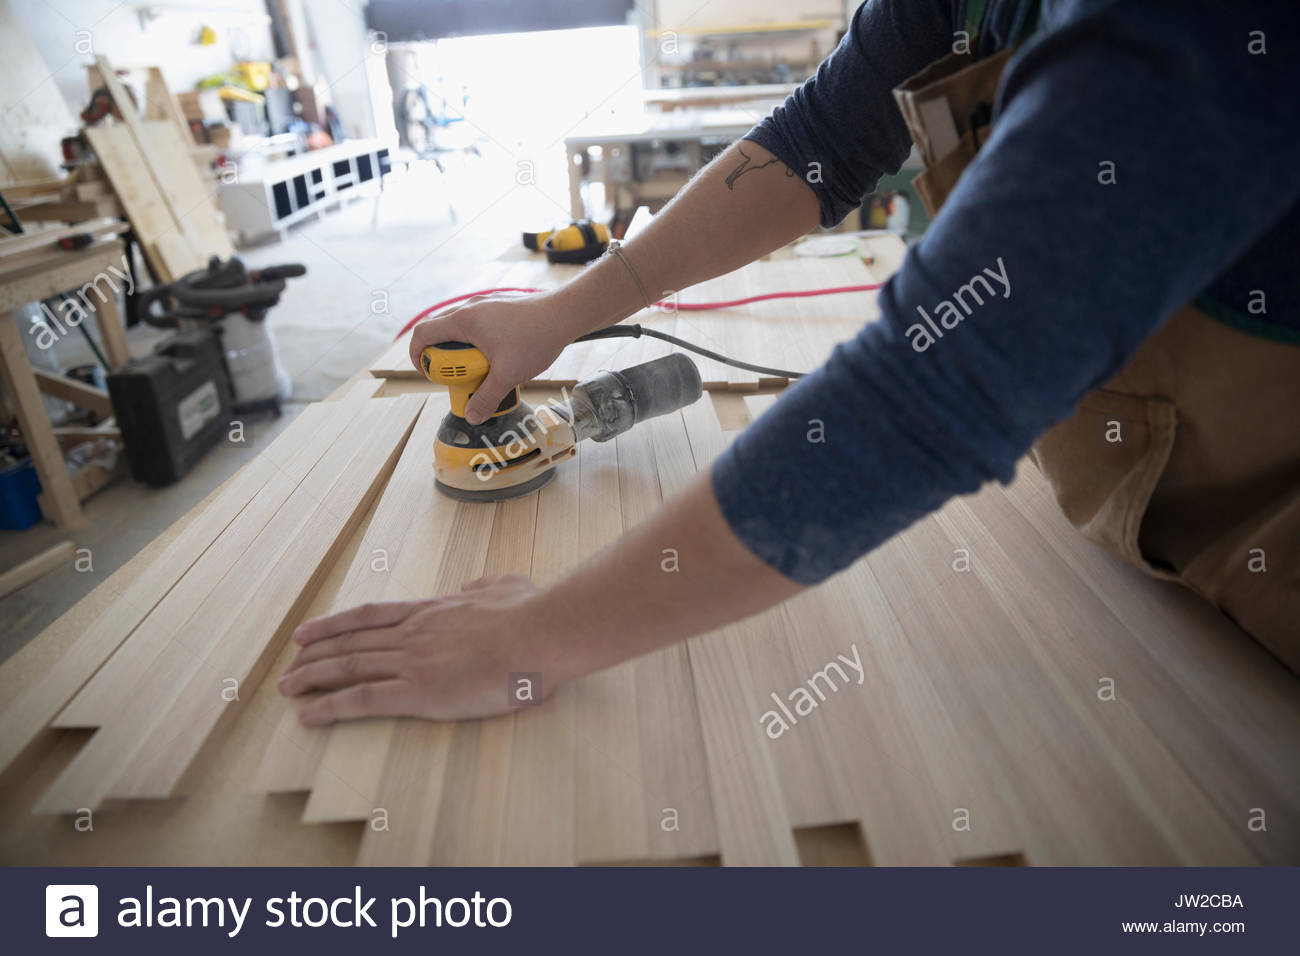 Male carpenter using sander to sand wood planks in workshop - Stock Image